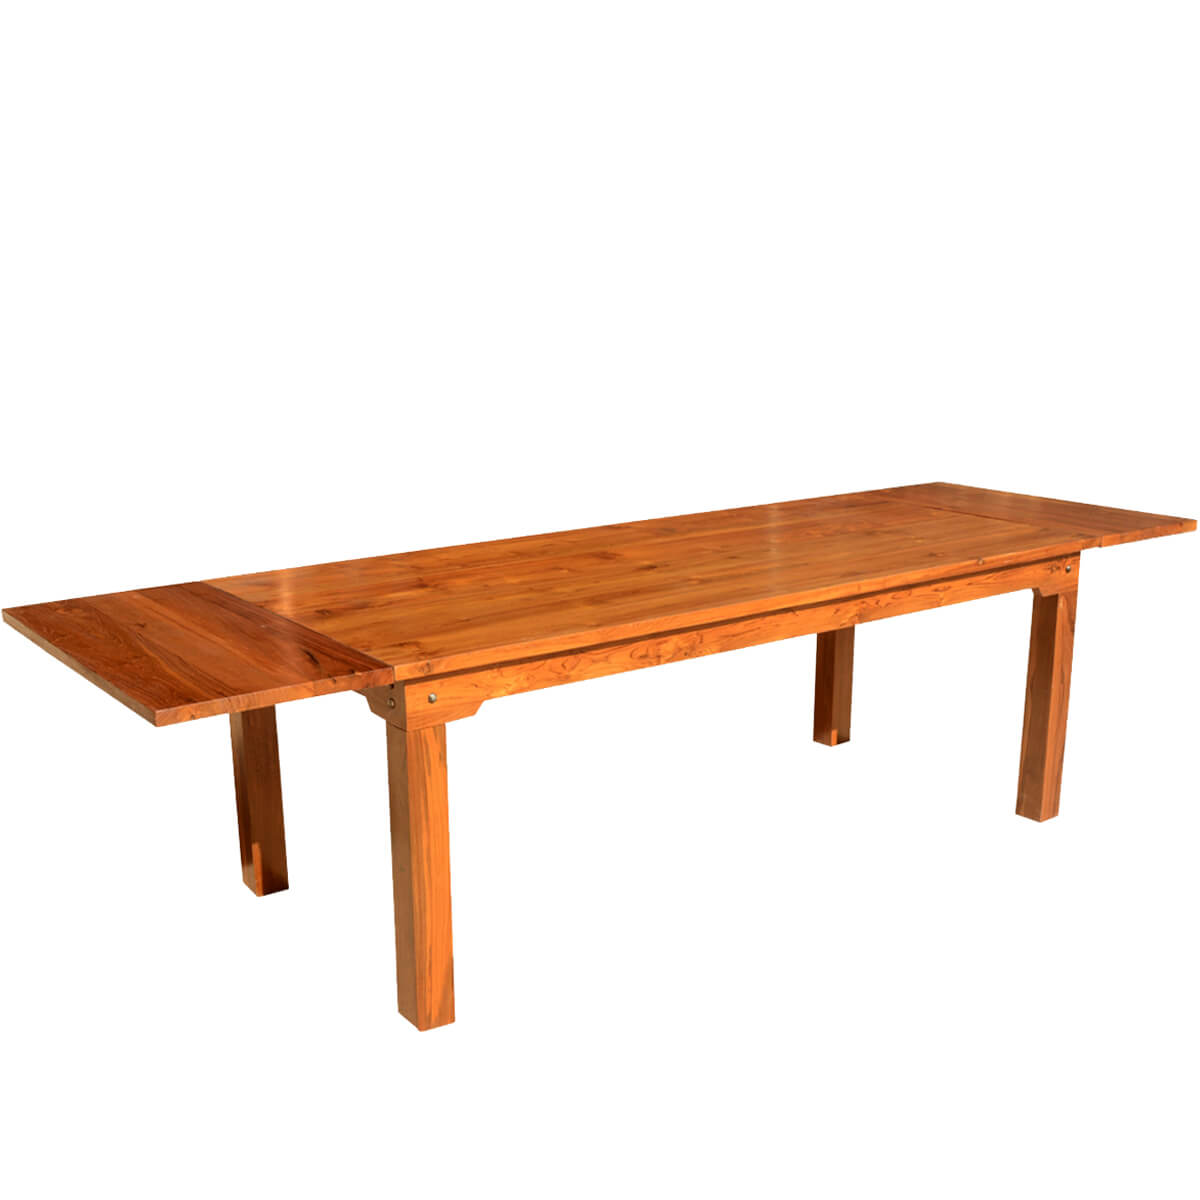 Simply modern solid teak wood dining table w extensions for Modern solid wood dining table